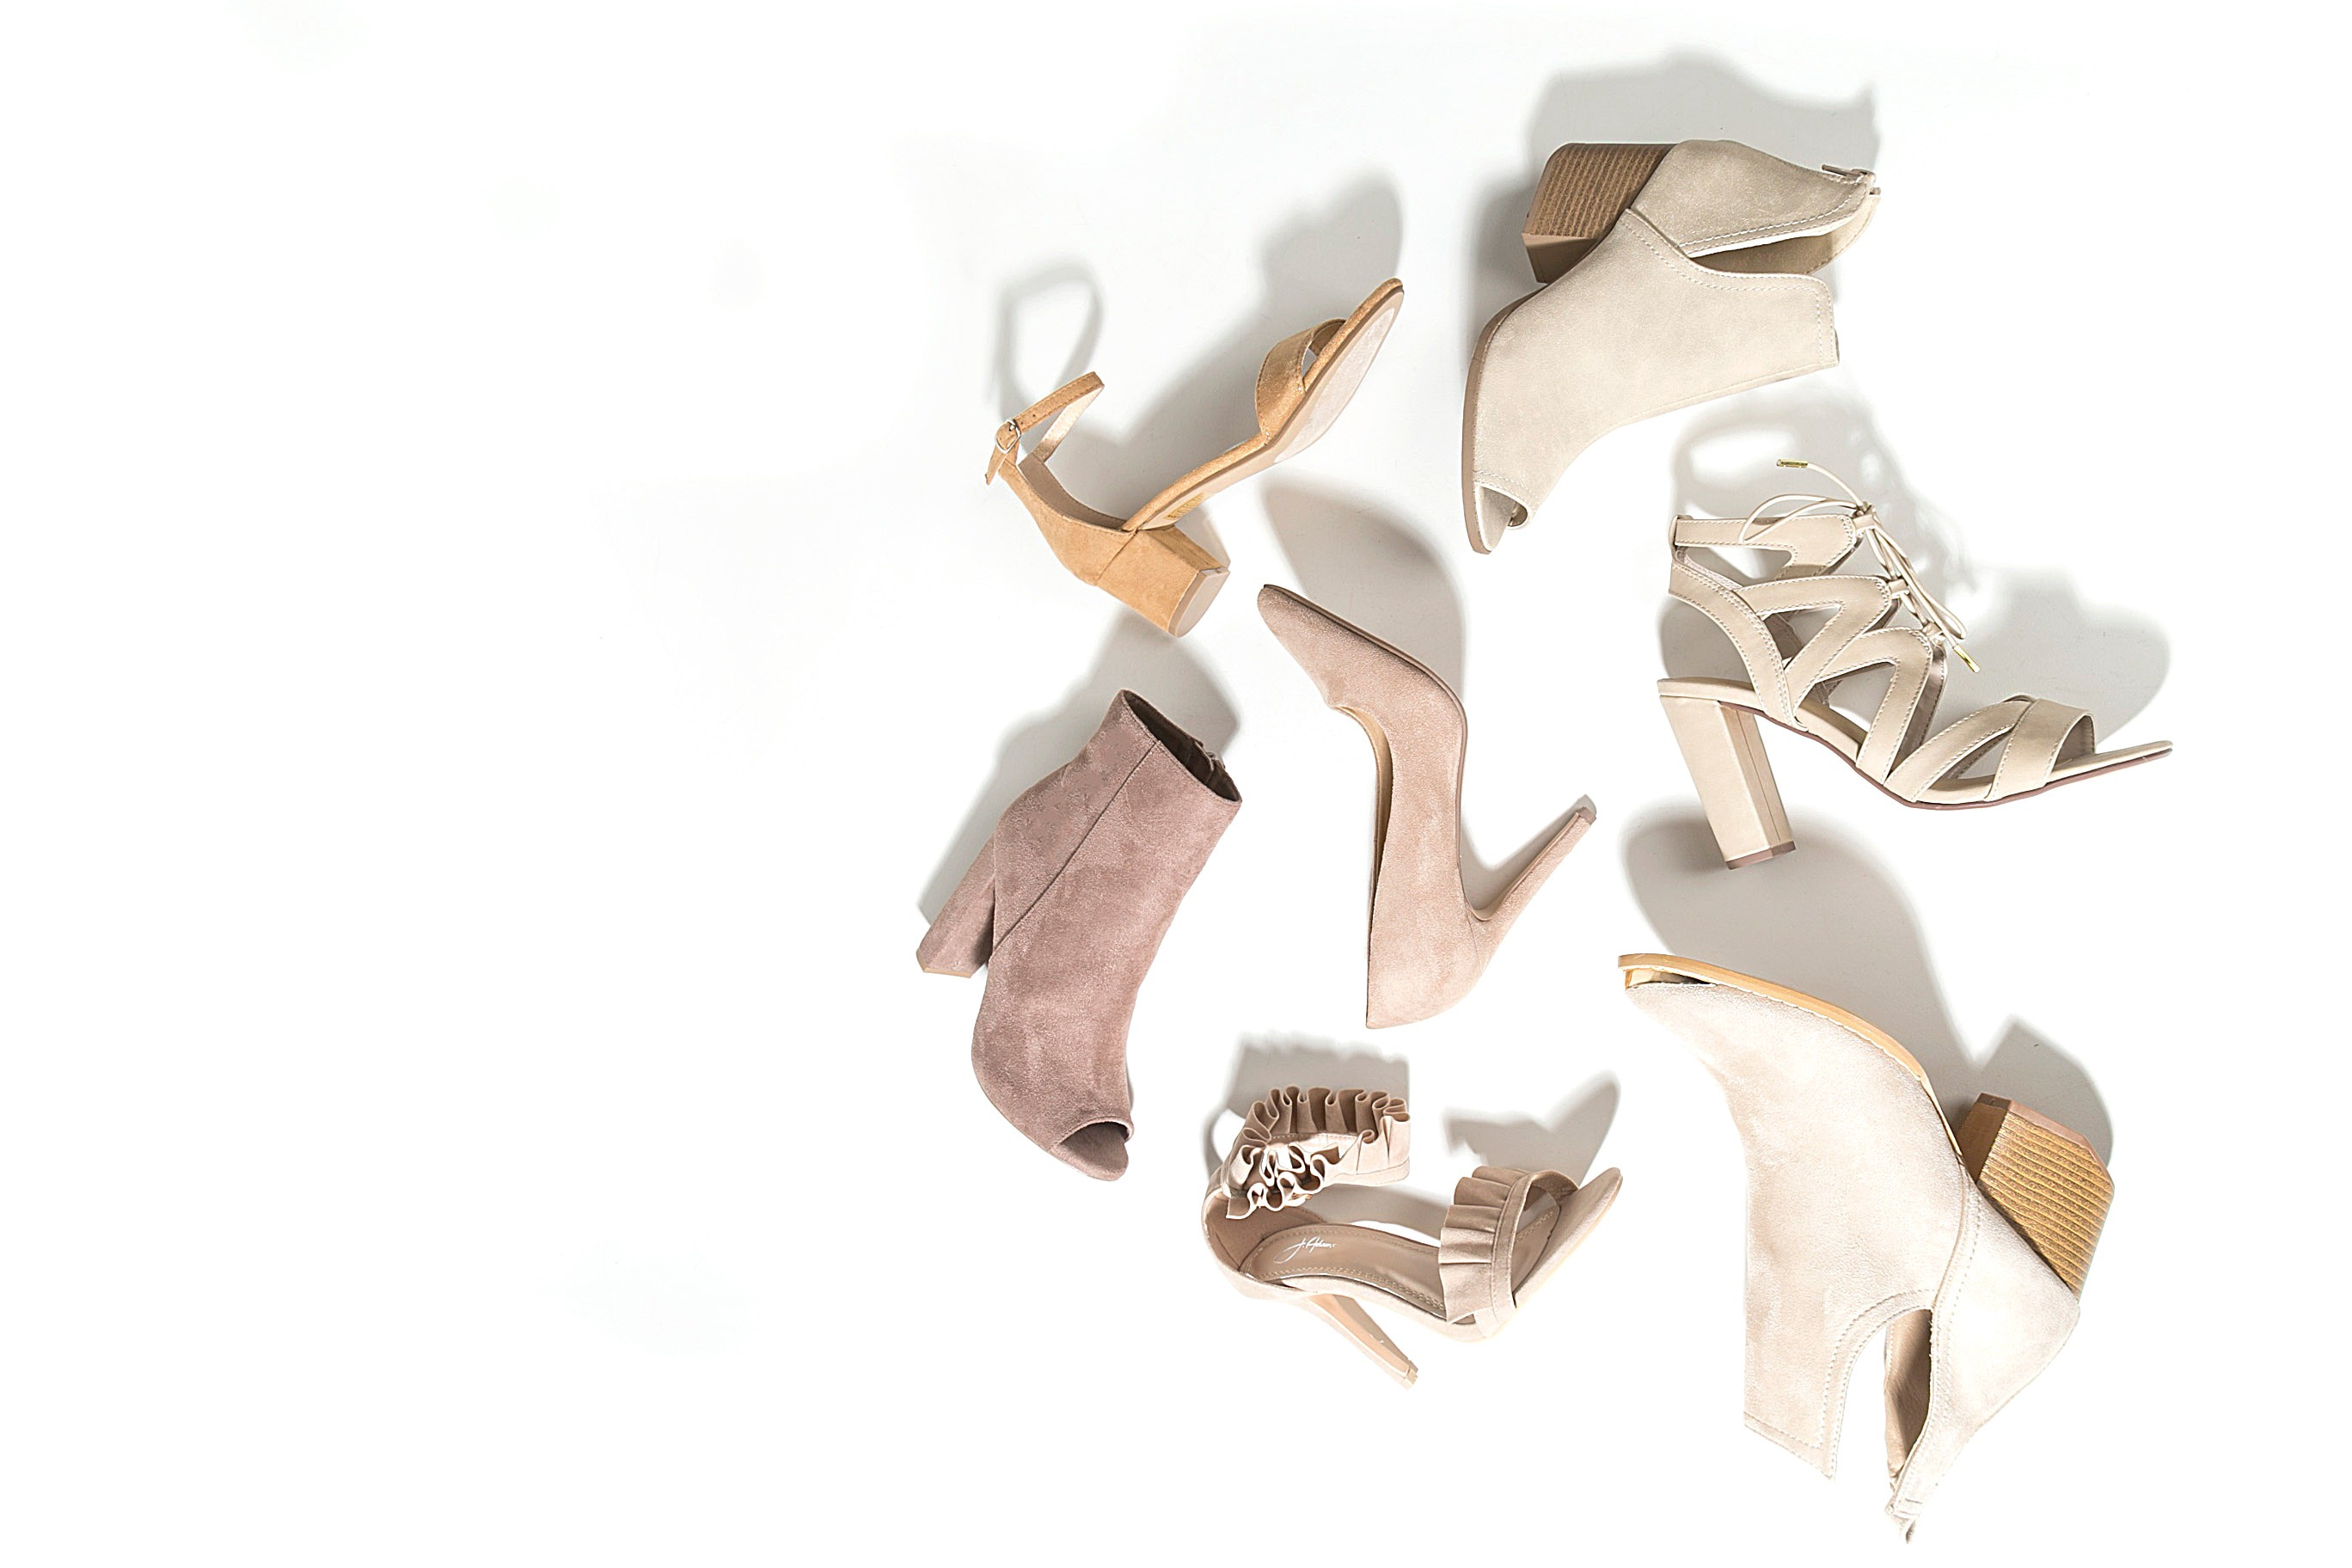 Stiletto Strapping Tips For Fashion Designers To Run Lean Startups By Springboard Enterprises Been There Run That Medium